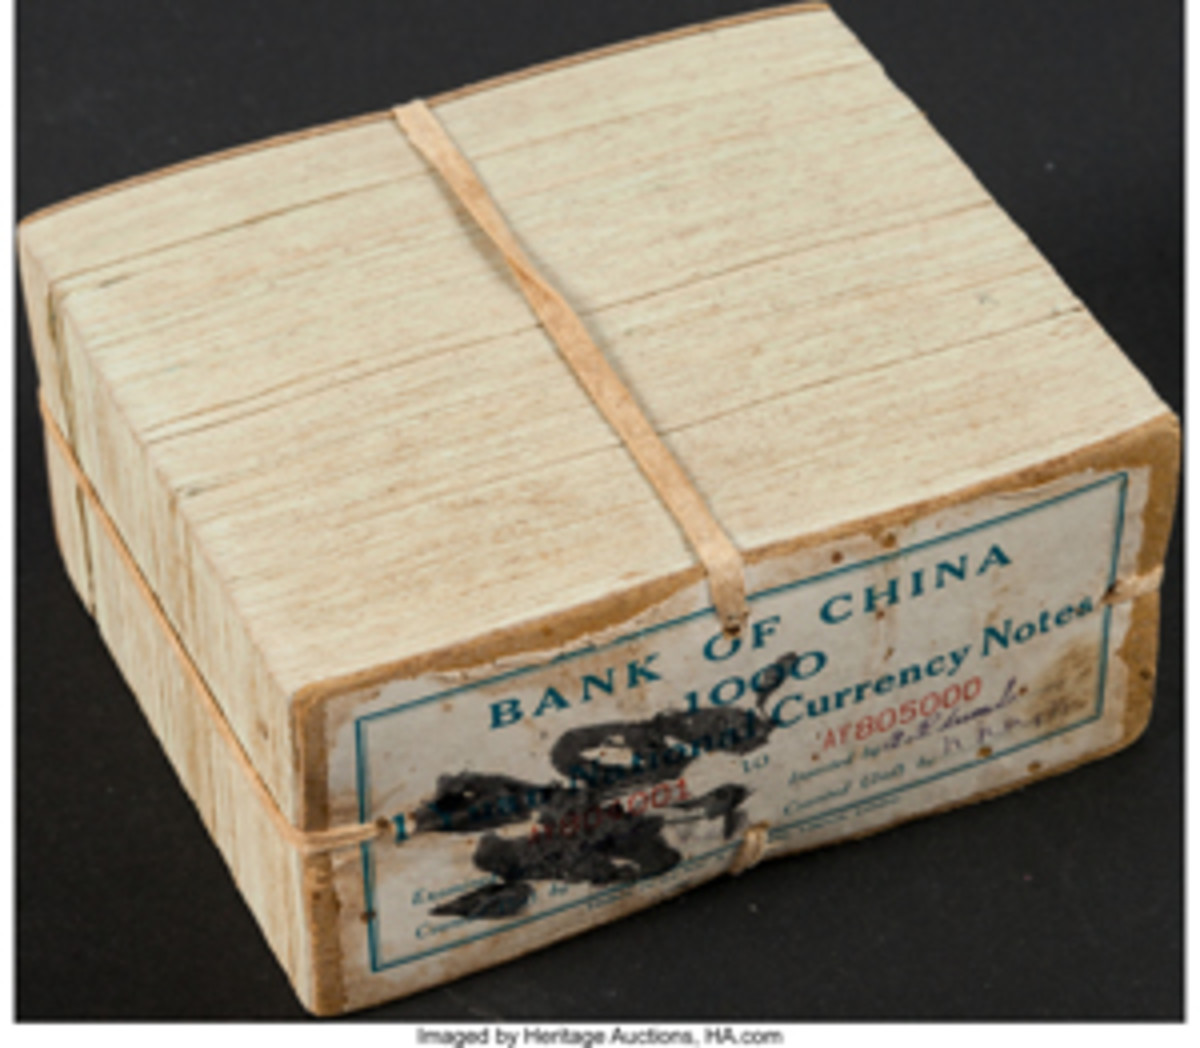 Bank of China brick of 1,000 consecutive 1937 one-yuan notes (P-79) that sold for $11,400.